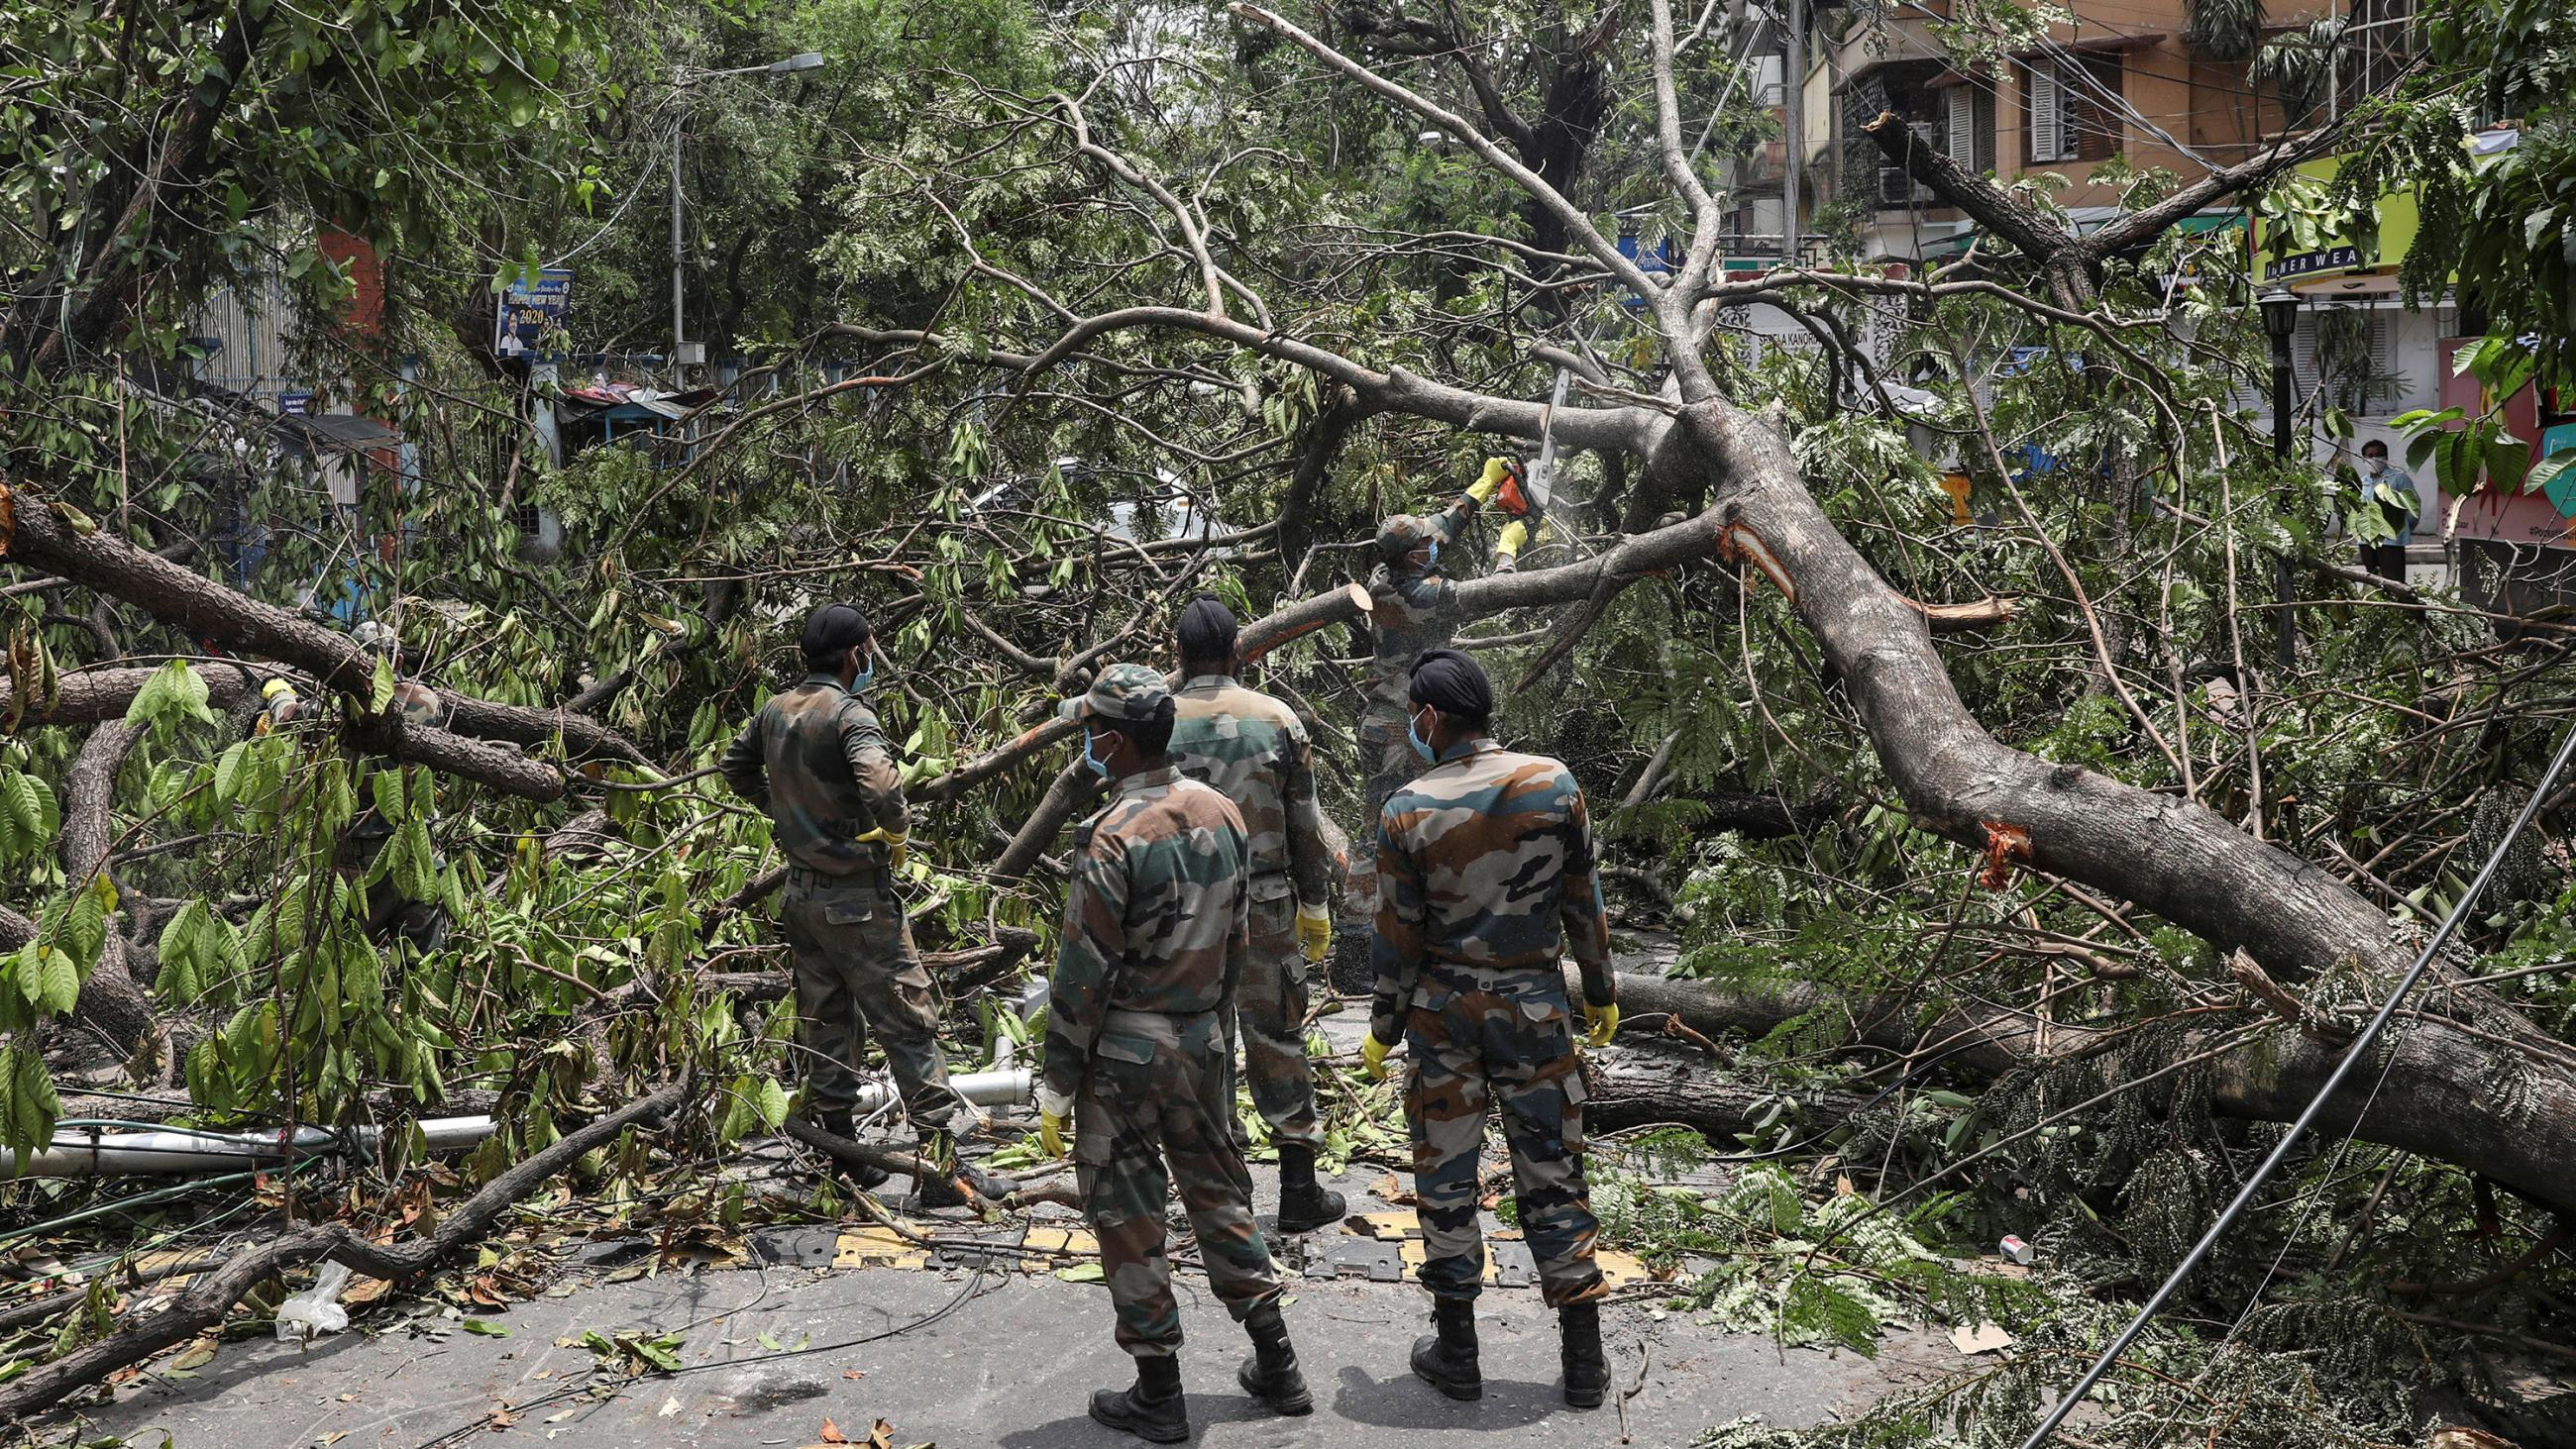 The photo shows several soldiers standing amid fallen trees and other storm-related destruction.